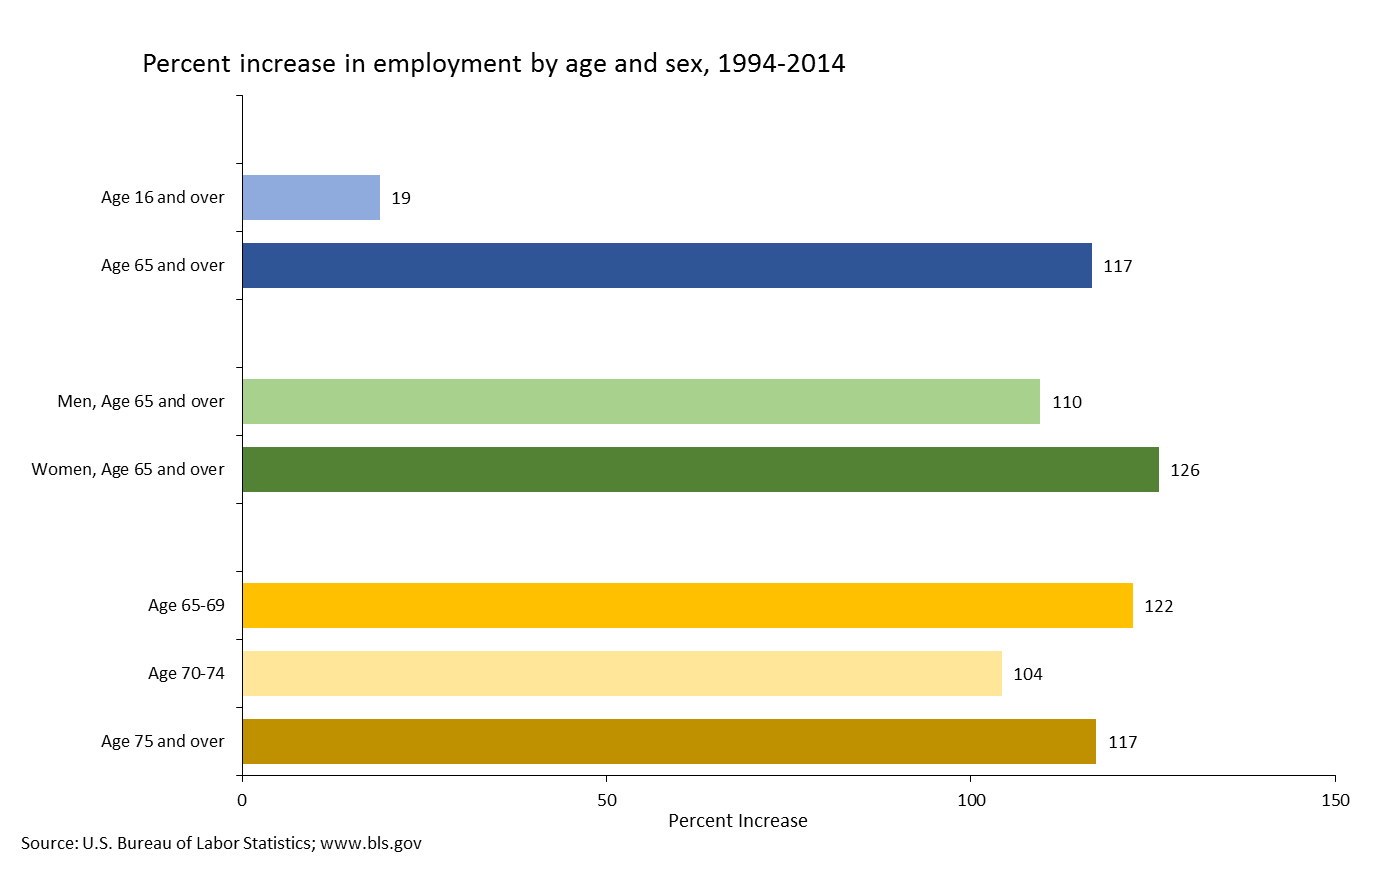 Graph showing percent increase in employment by age and sex, from 1994-2014